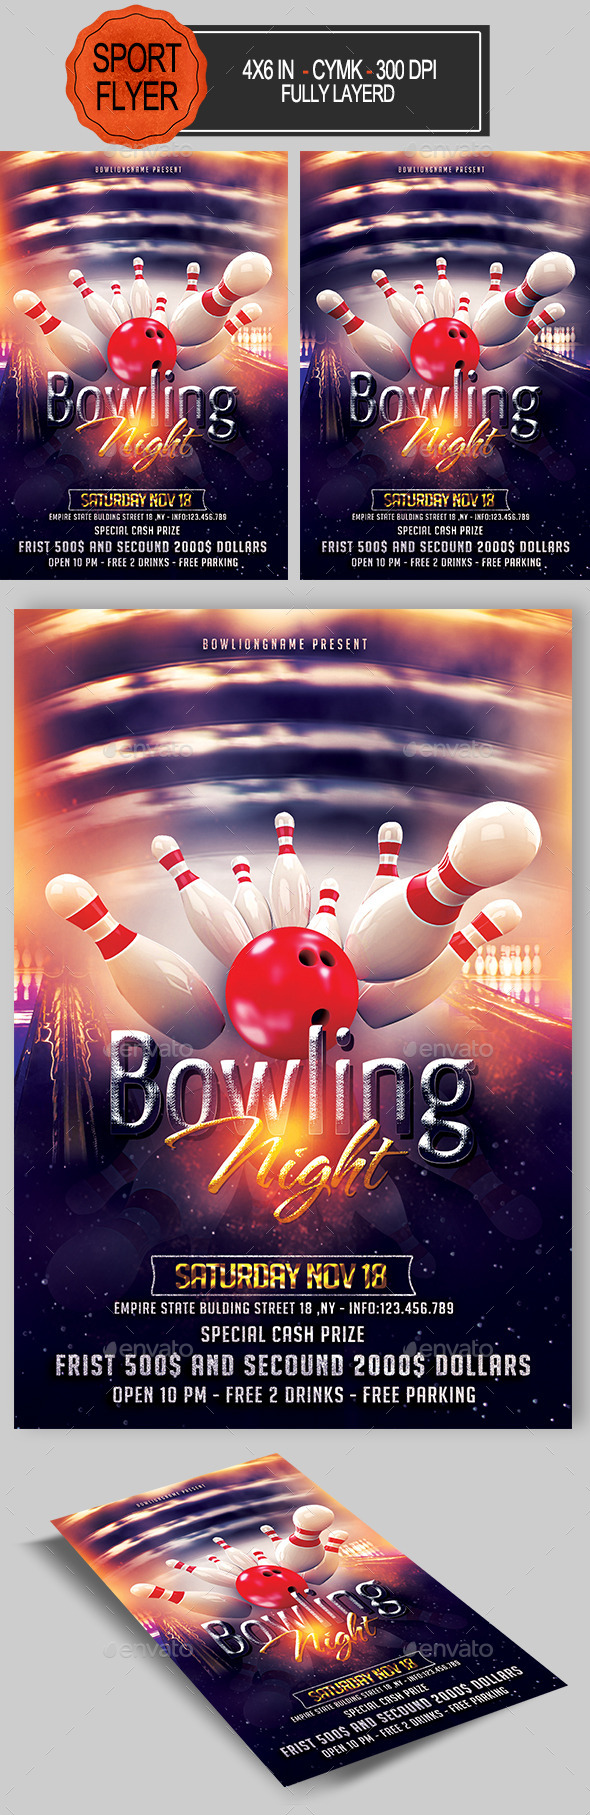 Bowling Night Flyer - Sports Events